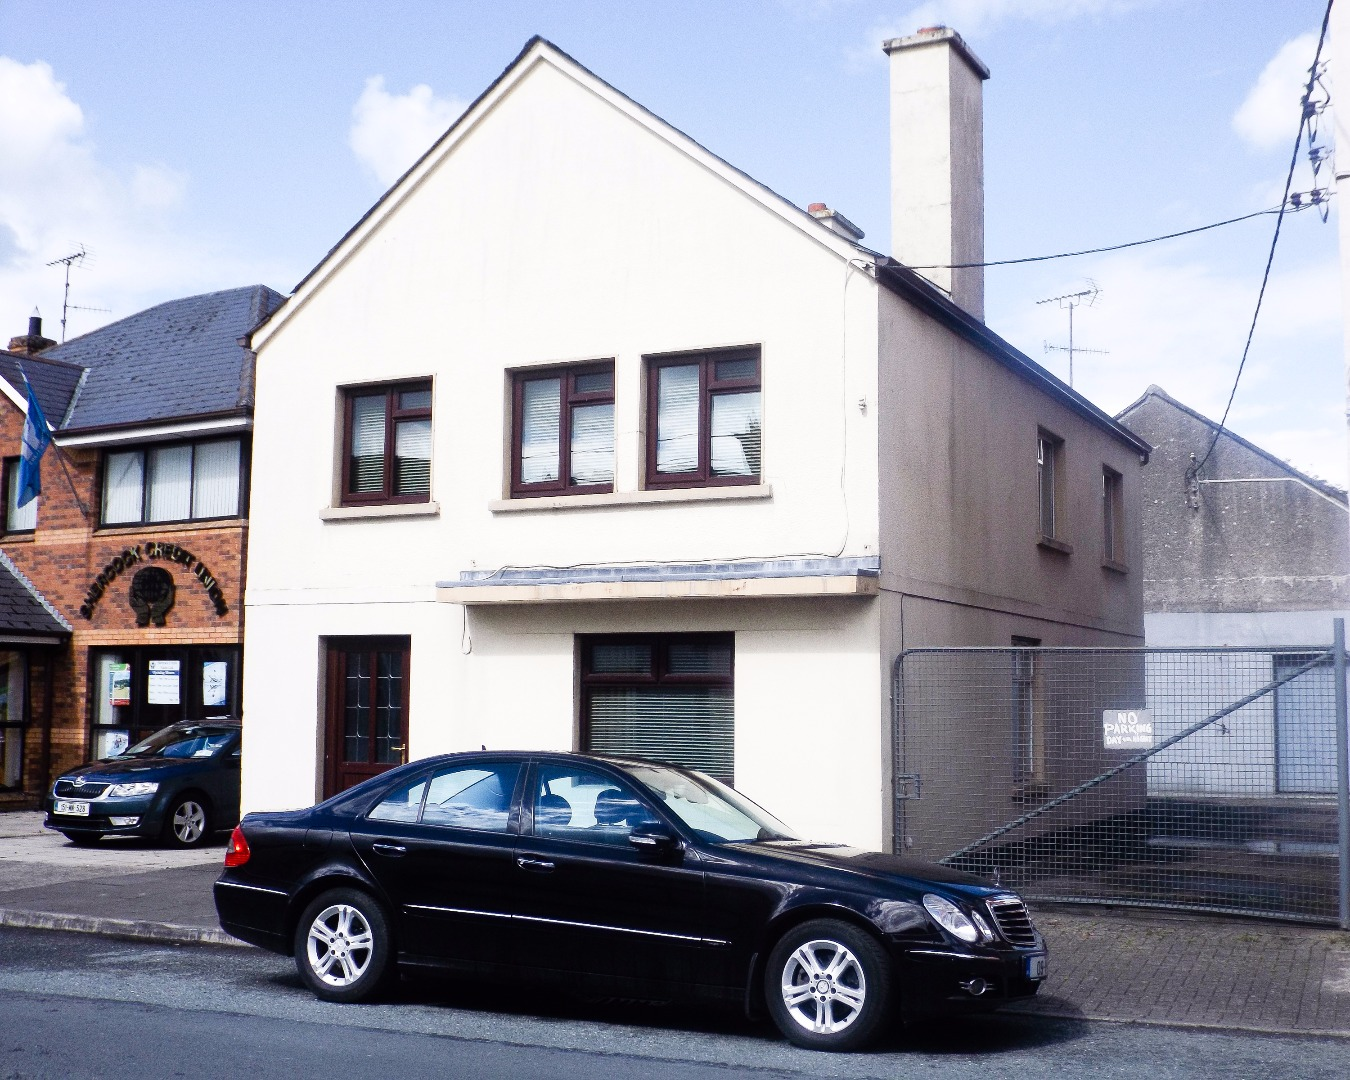 4 bed House for sale on Main Street, Shercock, Co. Cavan - Property Image 1